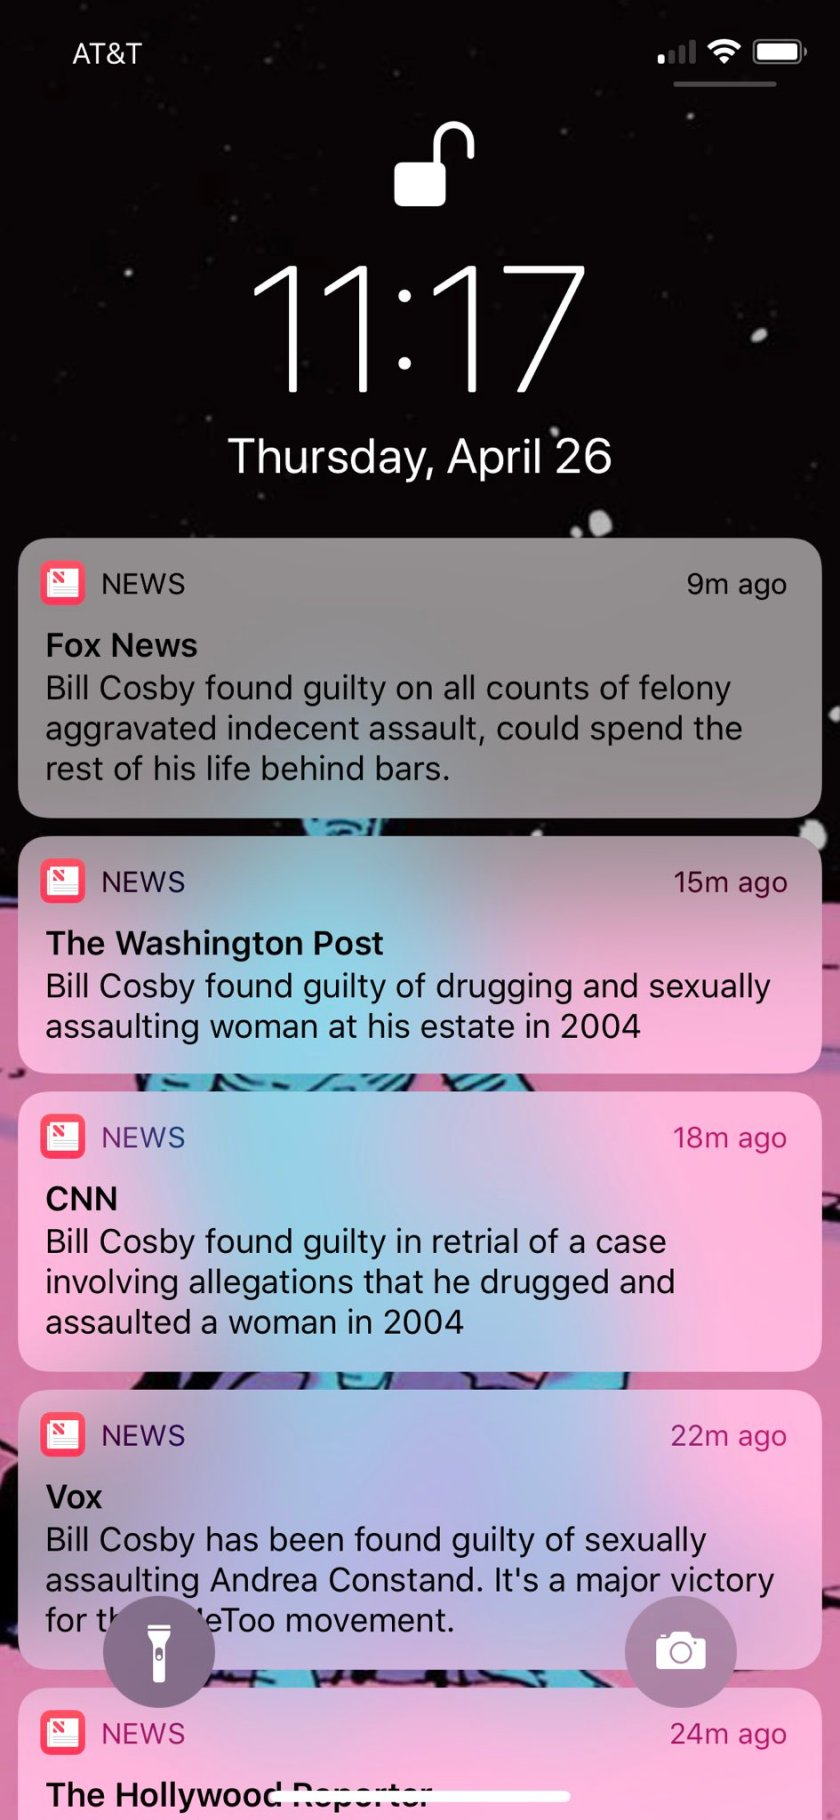 Was Cosby convicted? https://t.co/mX6l3mTPIJ